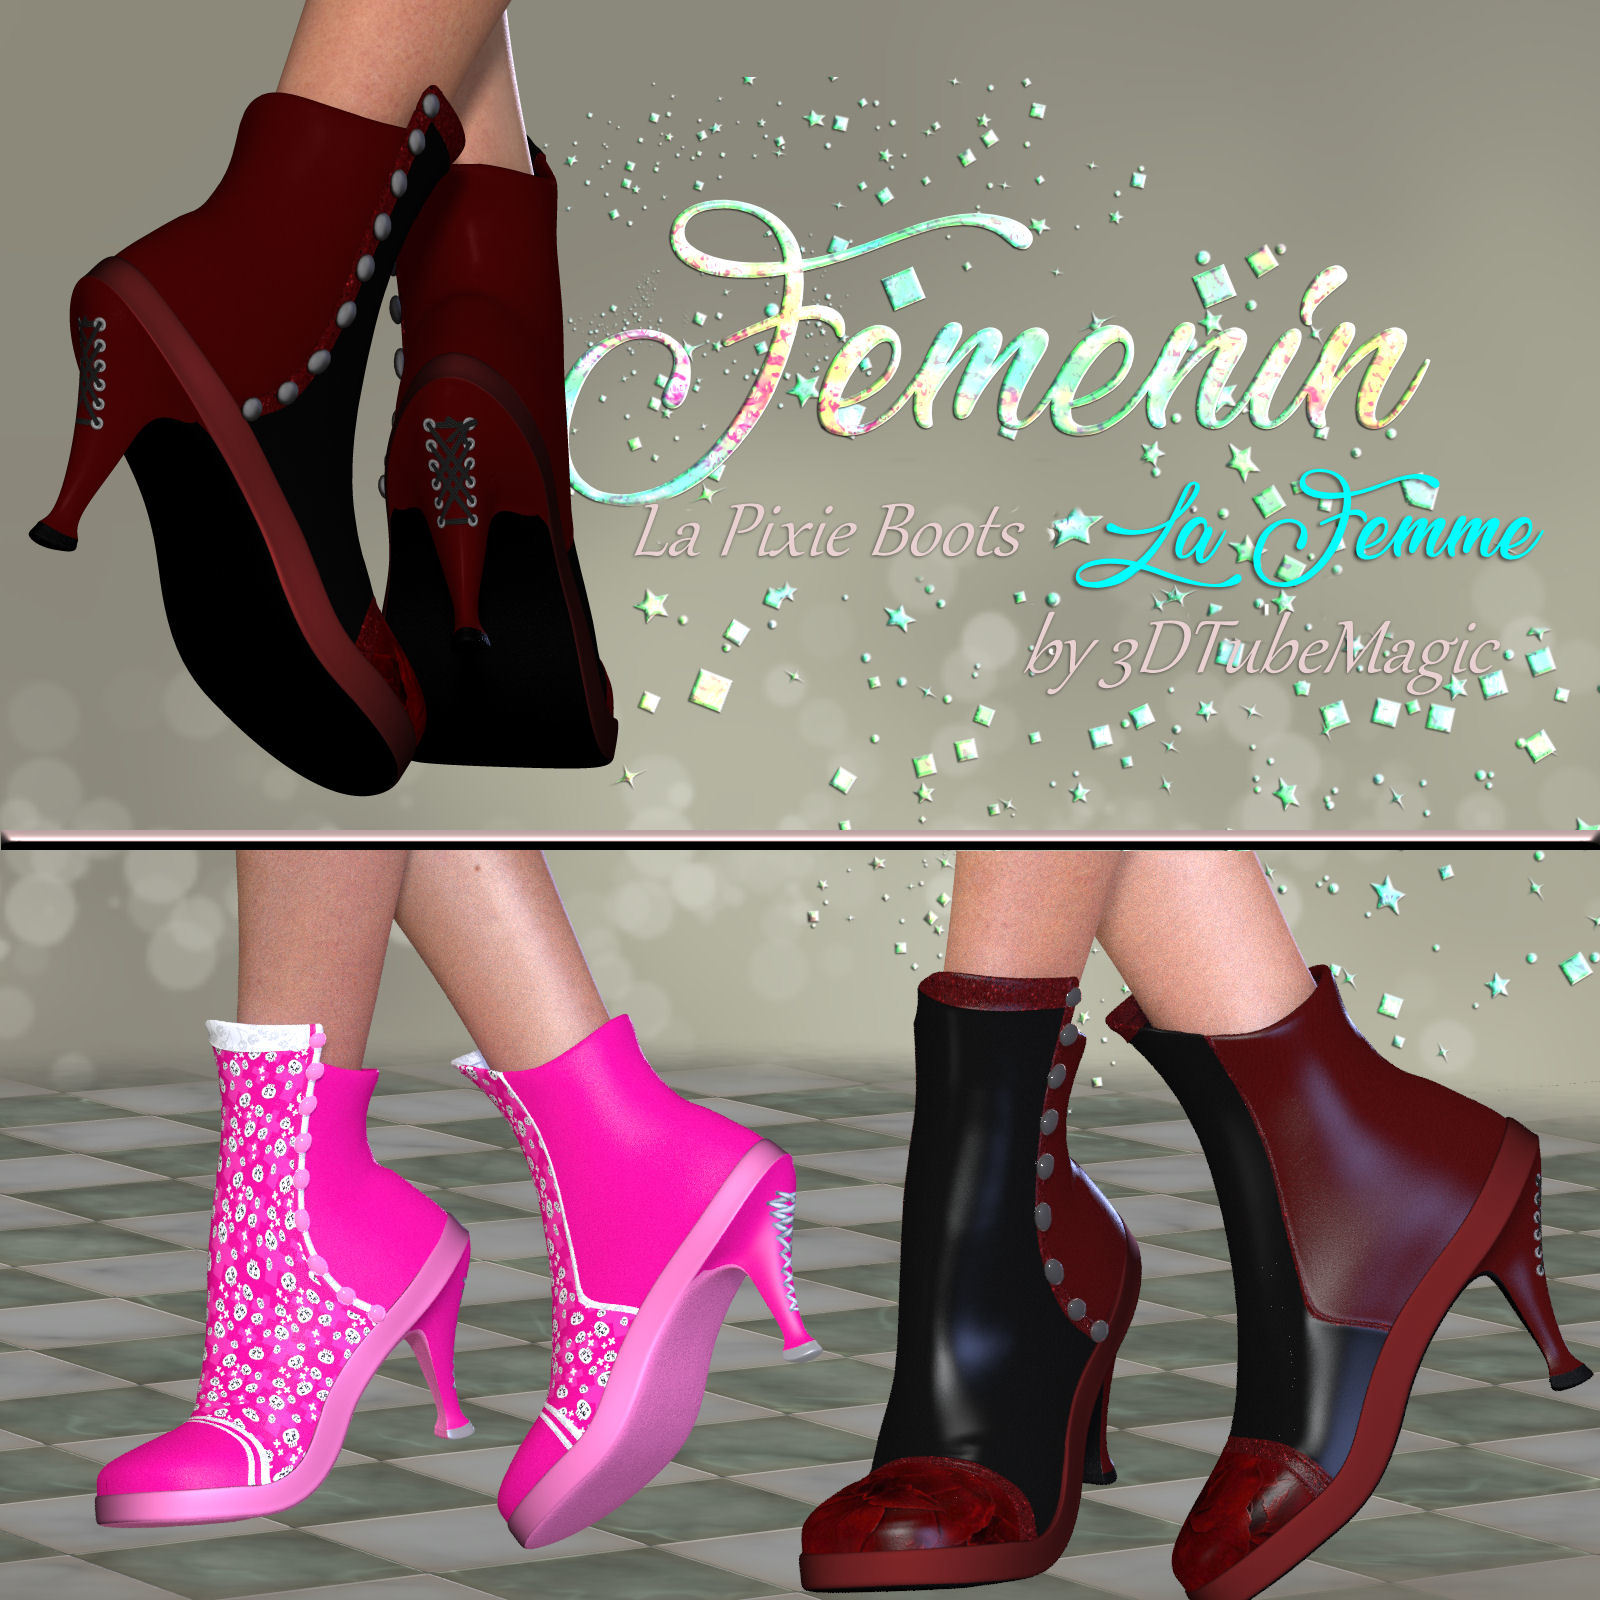 DA-Femenin for La Pixie Boots by 3DTubeMagic